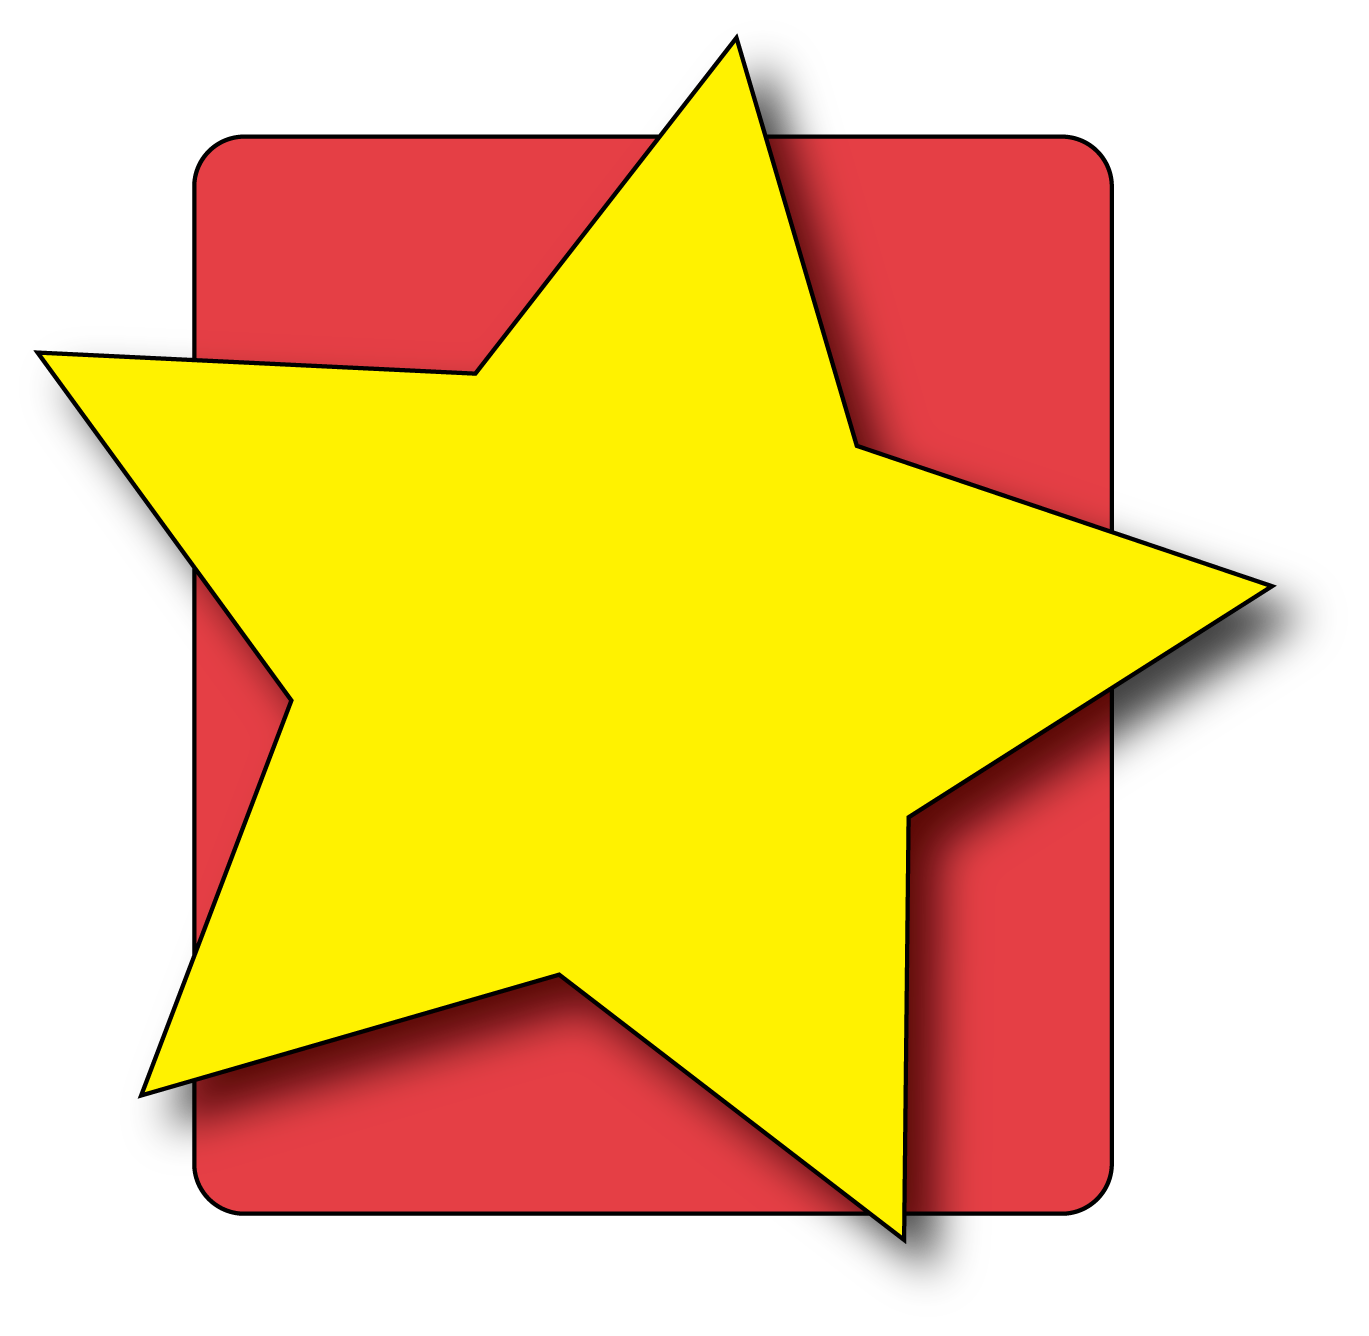 1369x1336 Star Clip Art No Background Free Clipart Images